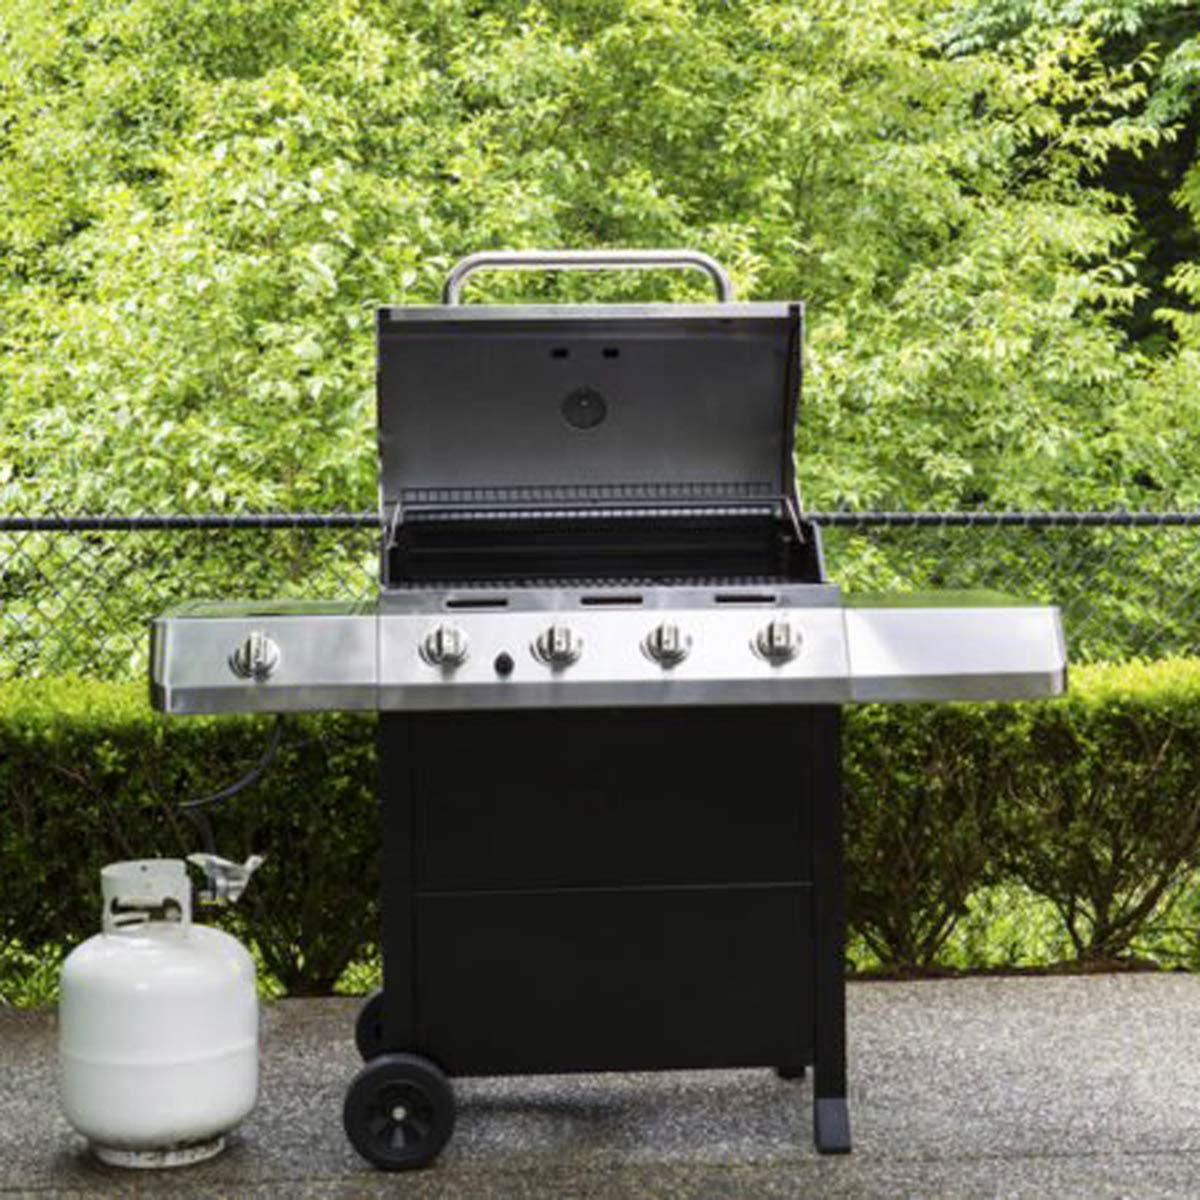 If You Re Having Trouble Getting Your Gas Grill Started Your Propane Tank Might Need To Be Burped You Ve Go In 2020 Grilling The Perfect Steak Propane Grill Gas Grill